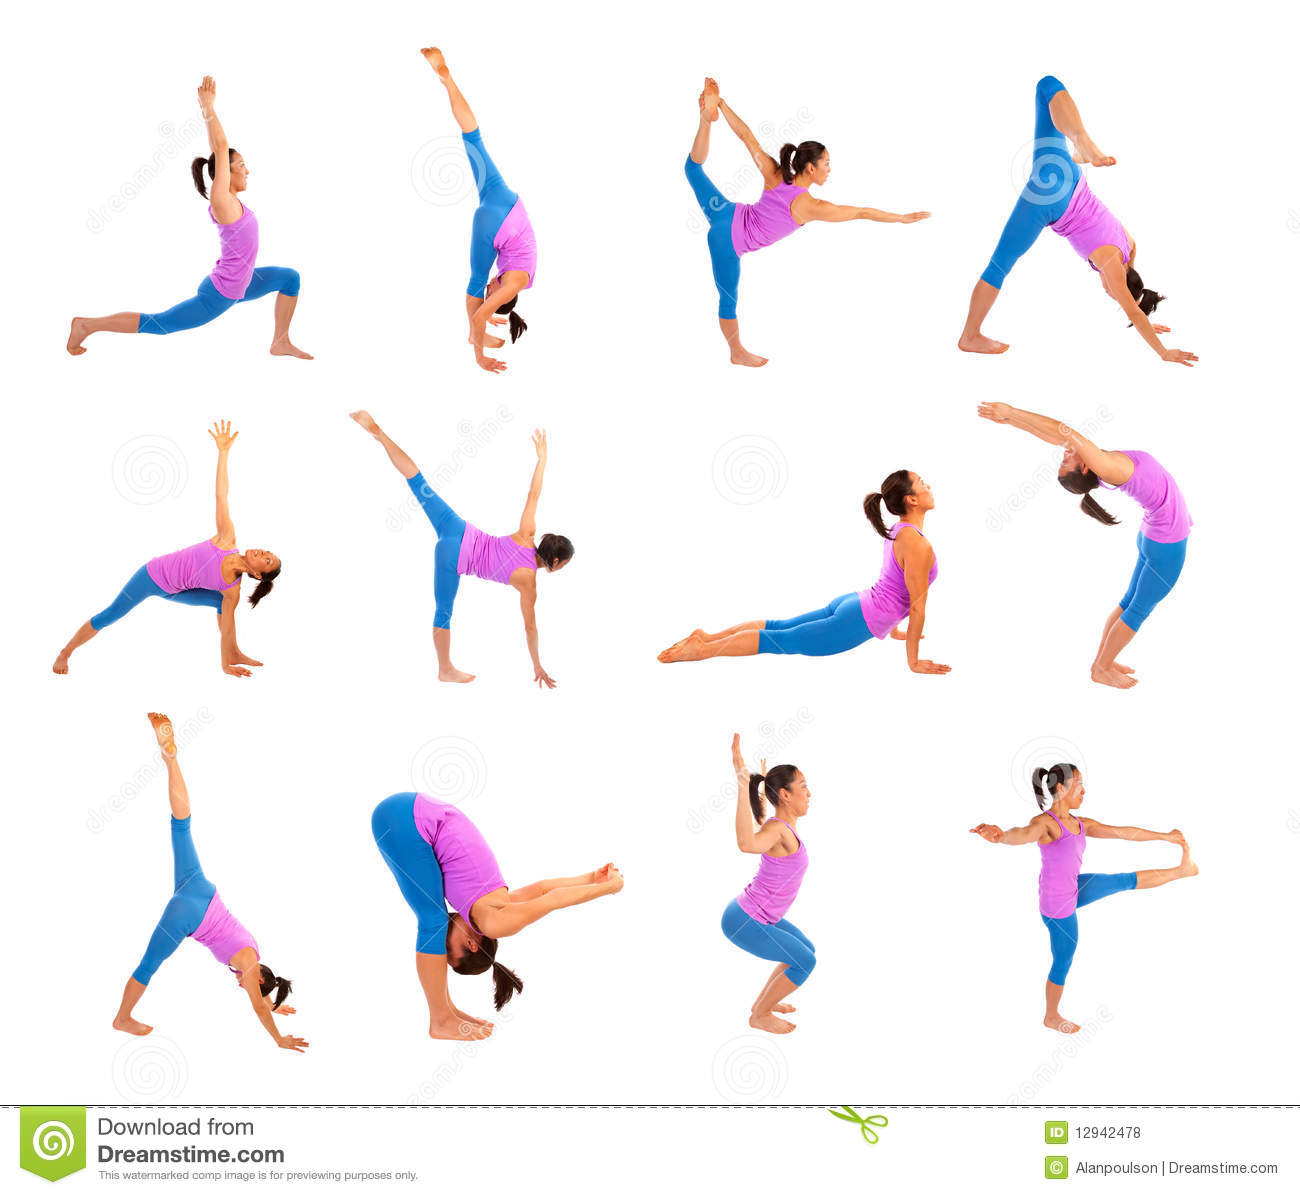 Yoga Poses Royalty Free Stock Photos - Image: 12942478